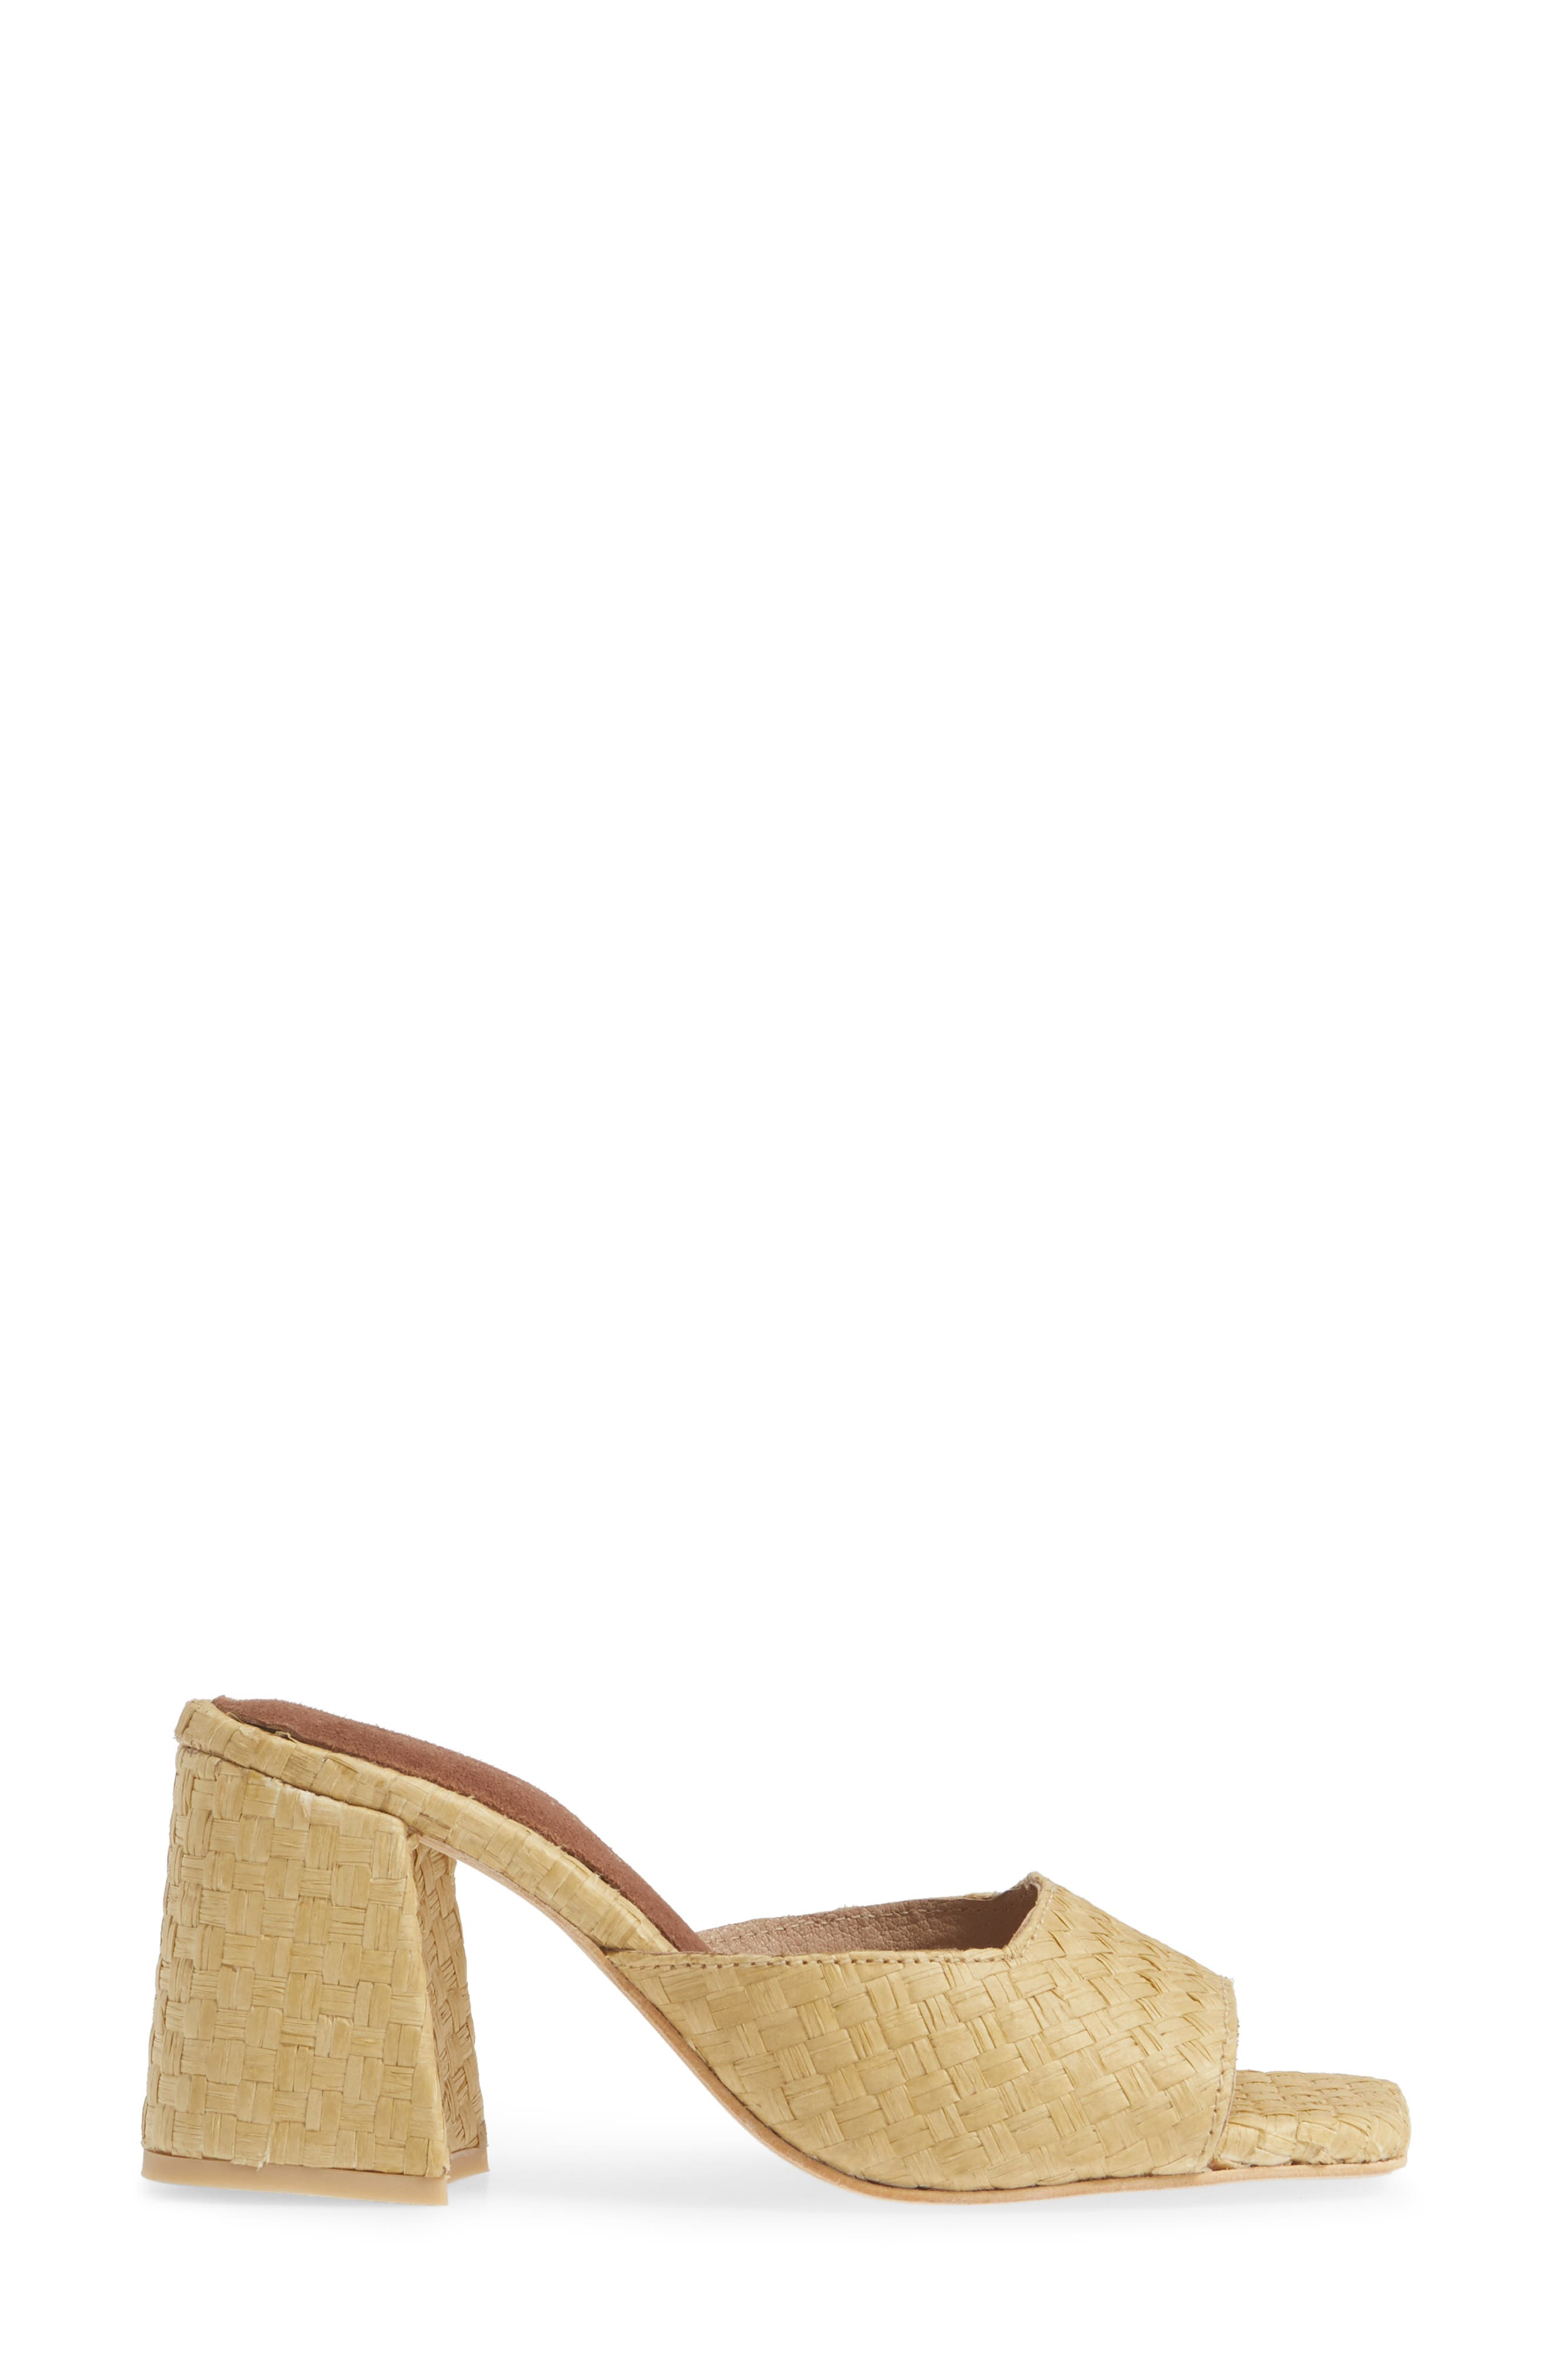 JEFFREY CAMPBELL, Mélange Raffia Slide Sandal, Alternate thumbnail 3, color, 200